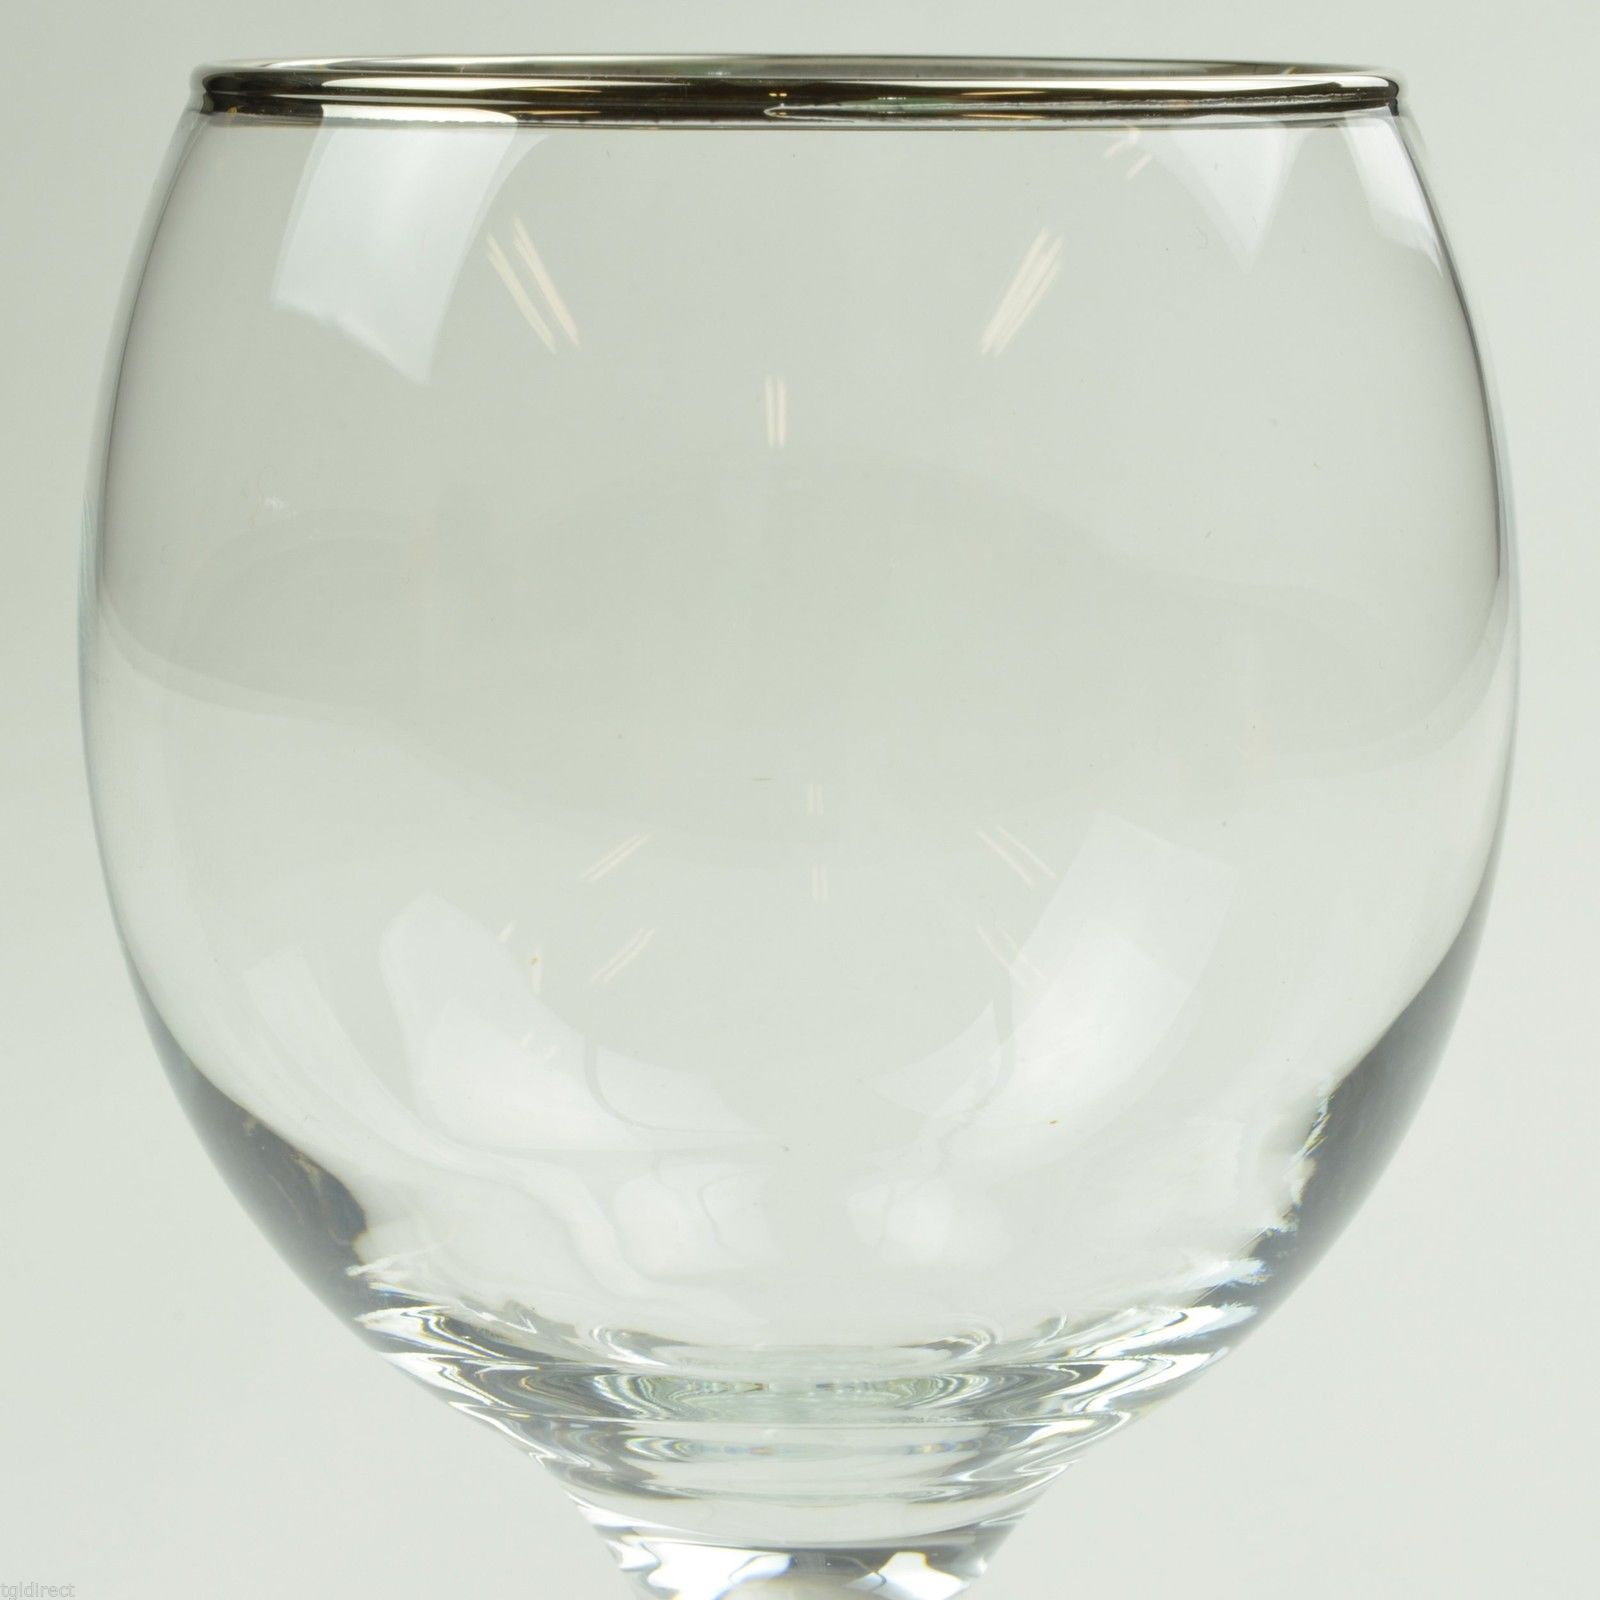 Gibson Everyday Essential Home Platinum Band Goblet Clear Glass Stemware Wine